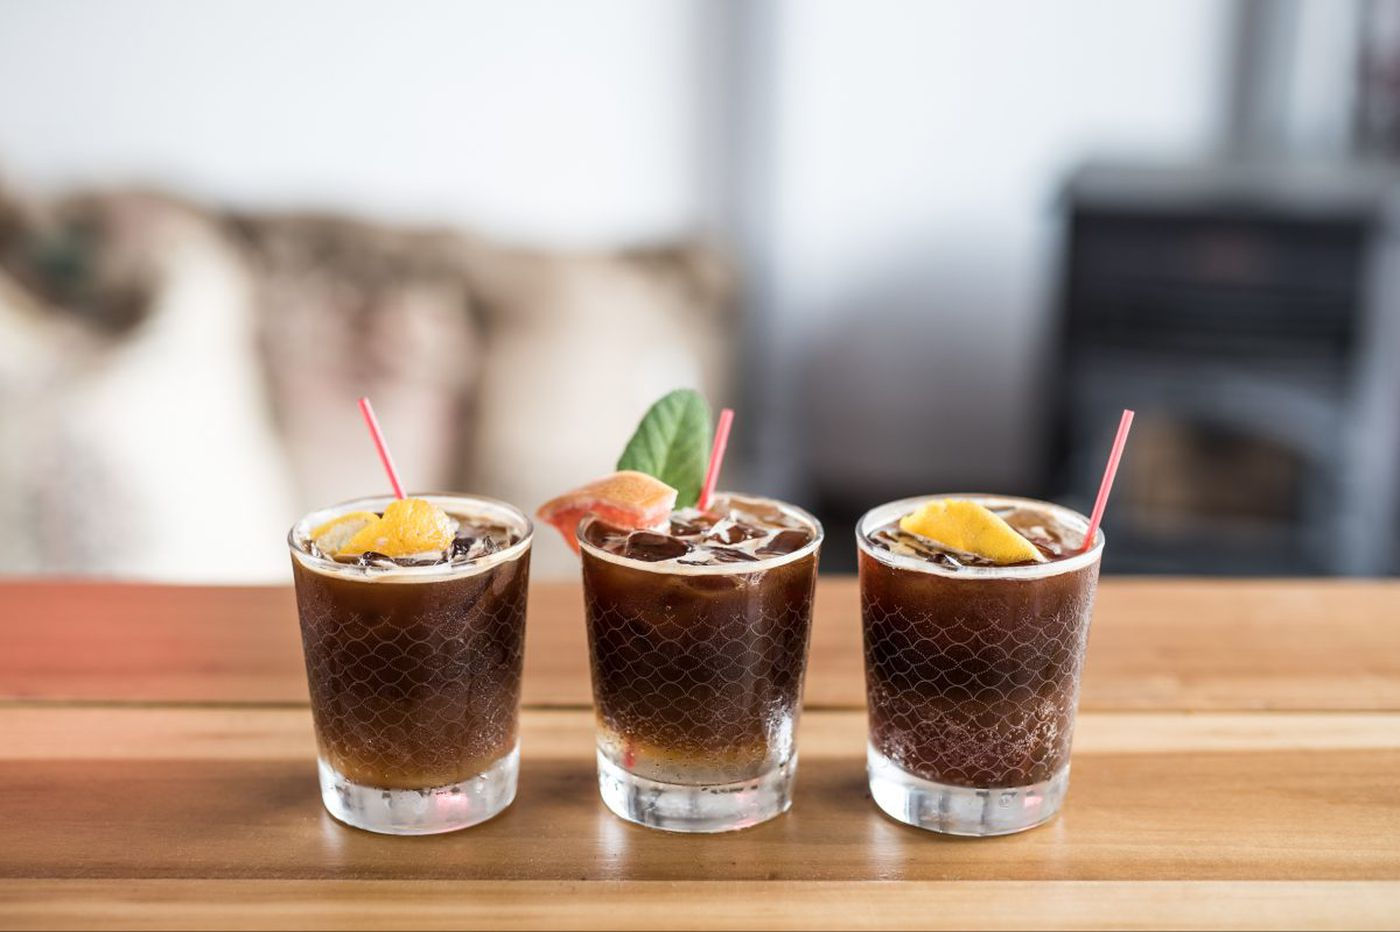 Coffee and tonic: The fizzy iceddrink for cooling down this summer